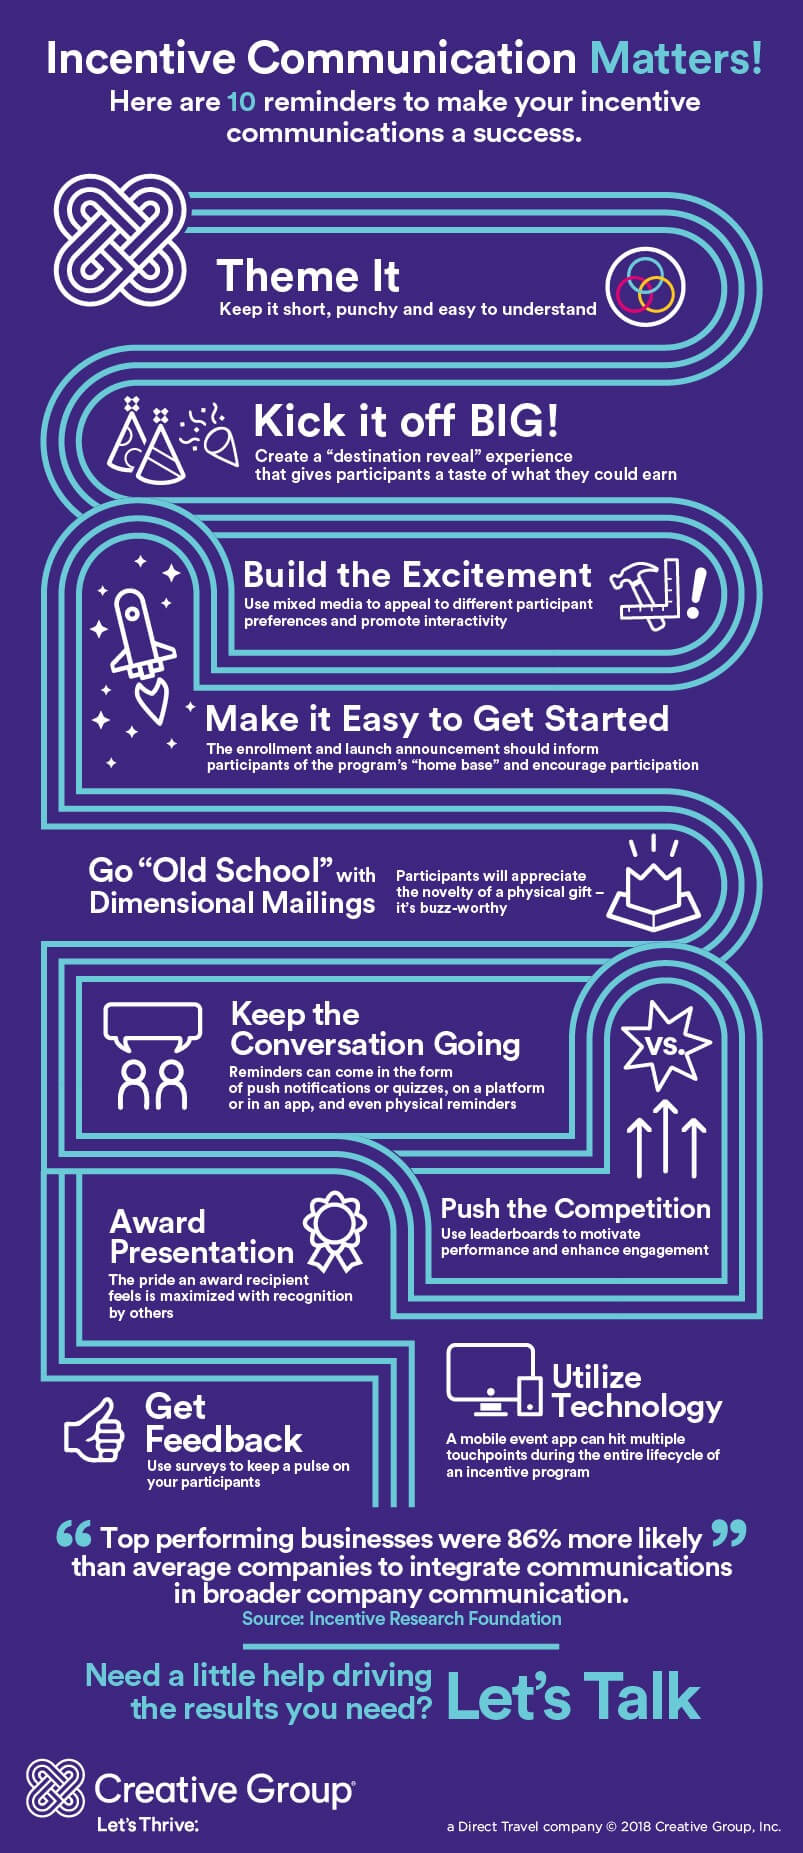 10 Steps to Execute a Powerful Incentive Communication